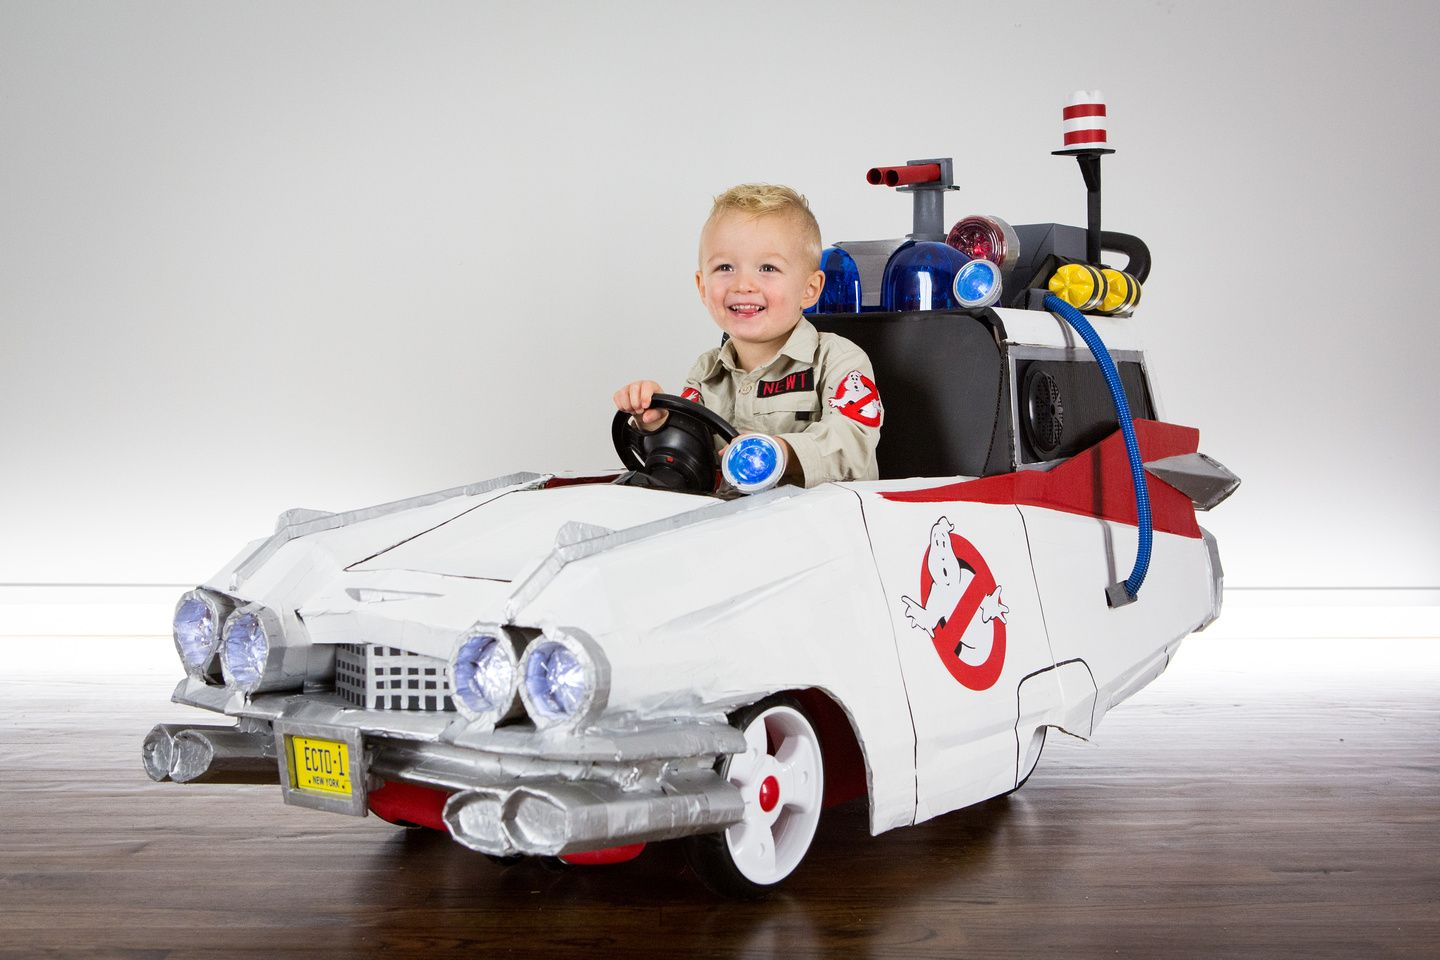 Ghostbusters toys car  FIC  Halloween ideas  Pinterest  Ghostbusters and Halloween